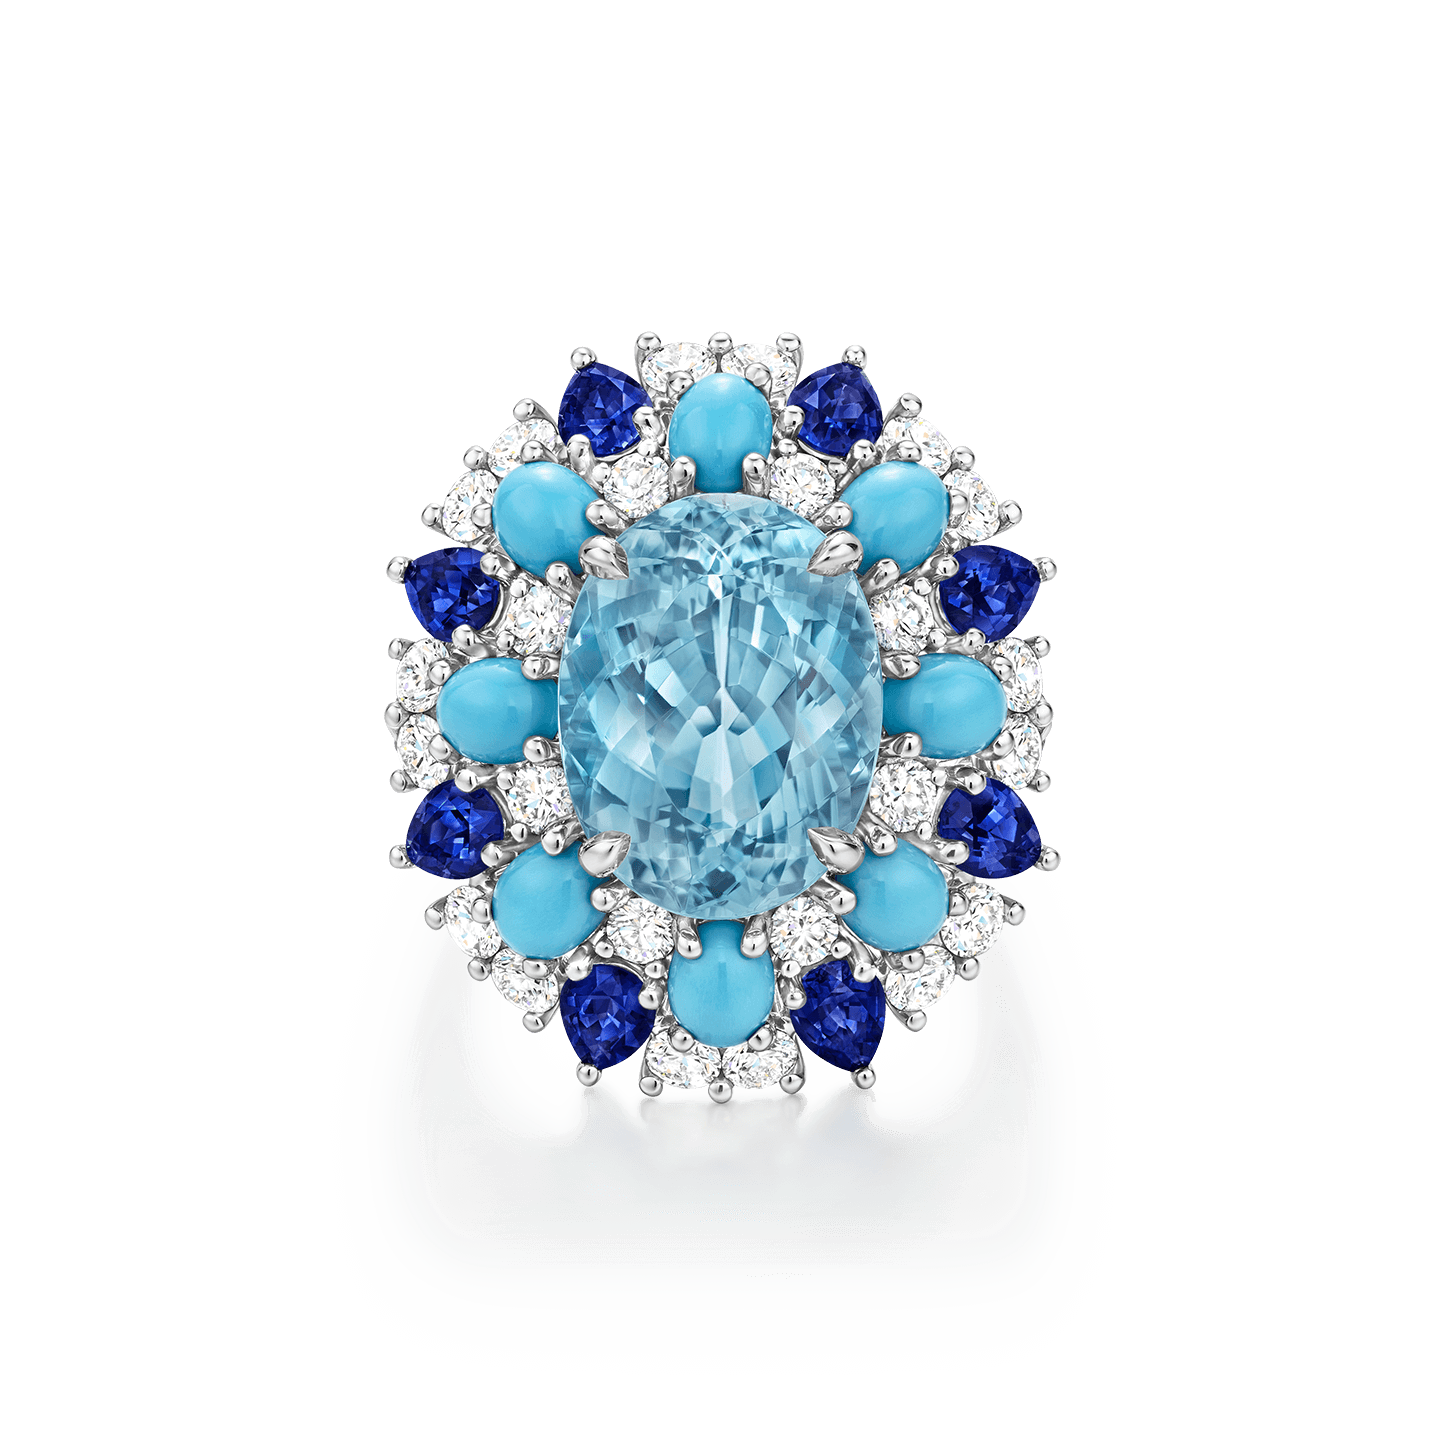 Winston Candy Paraiba Tourmaline Ring with Sapphires, Turquoise and Diamonds